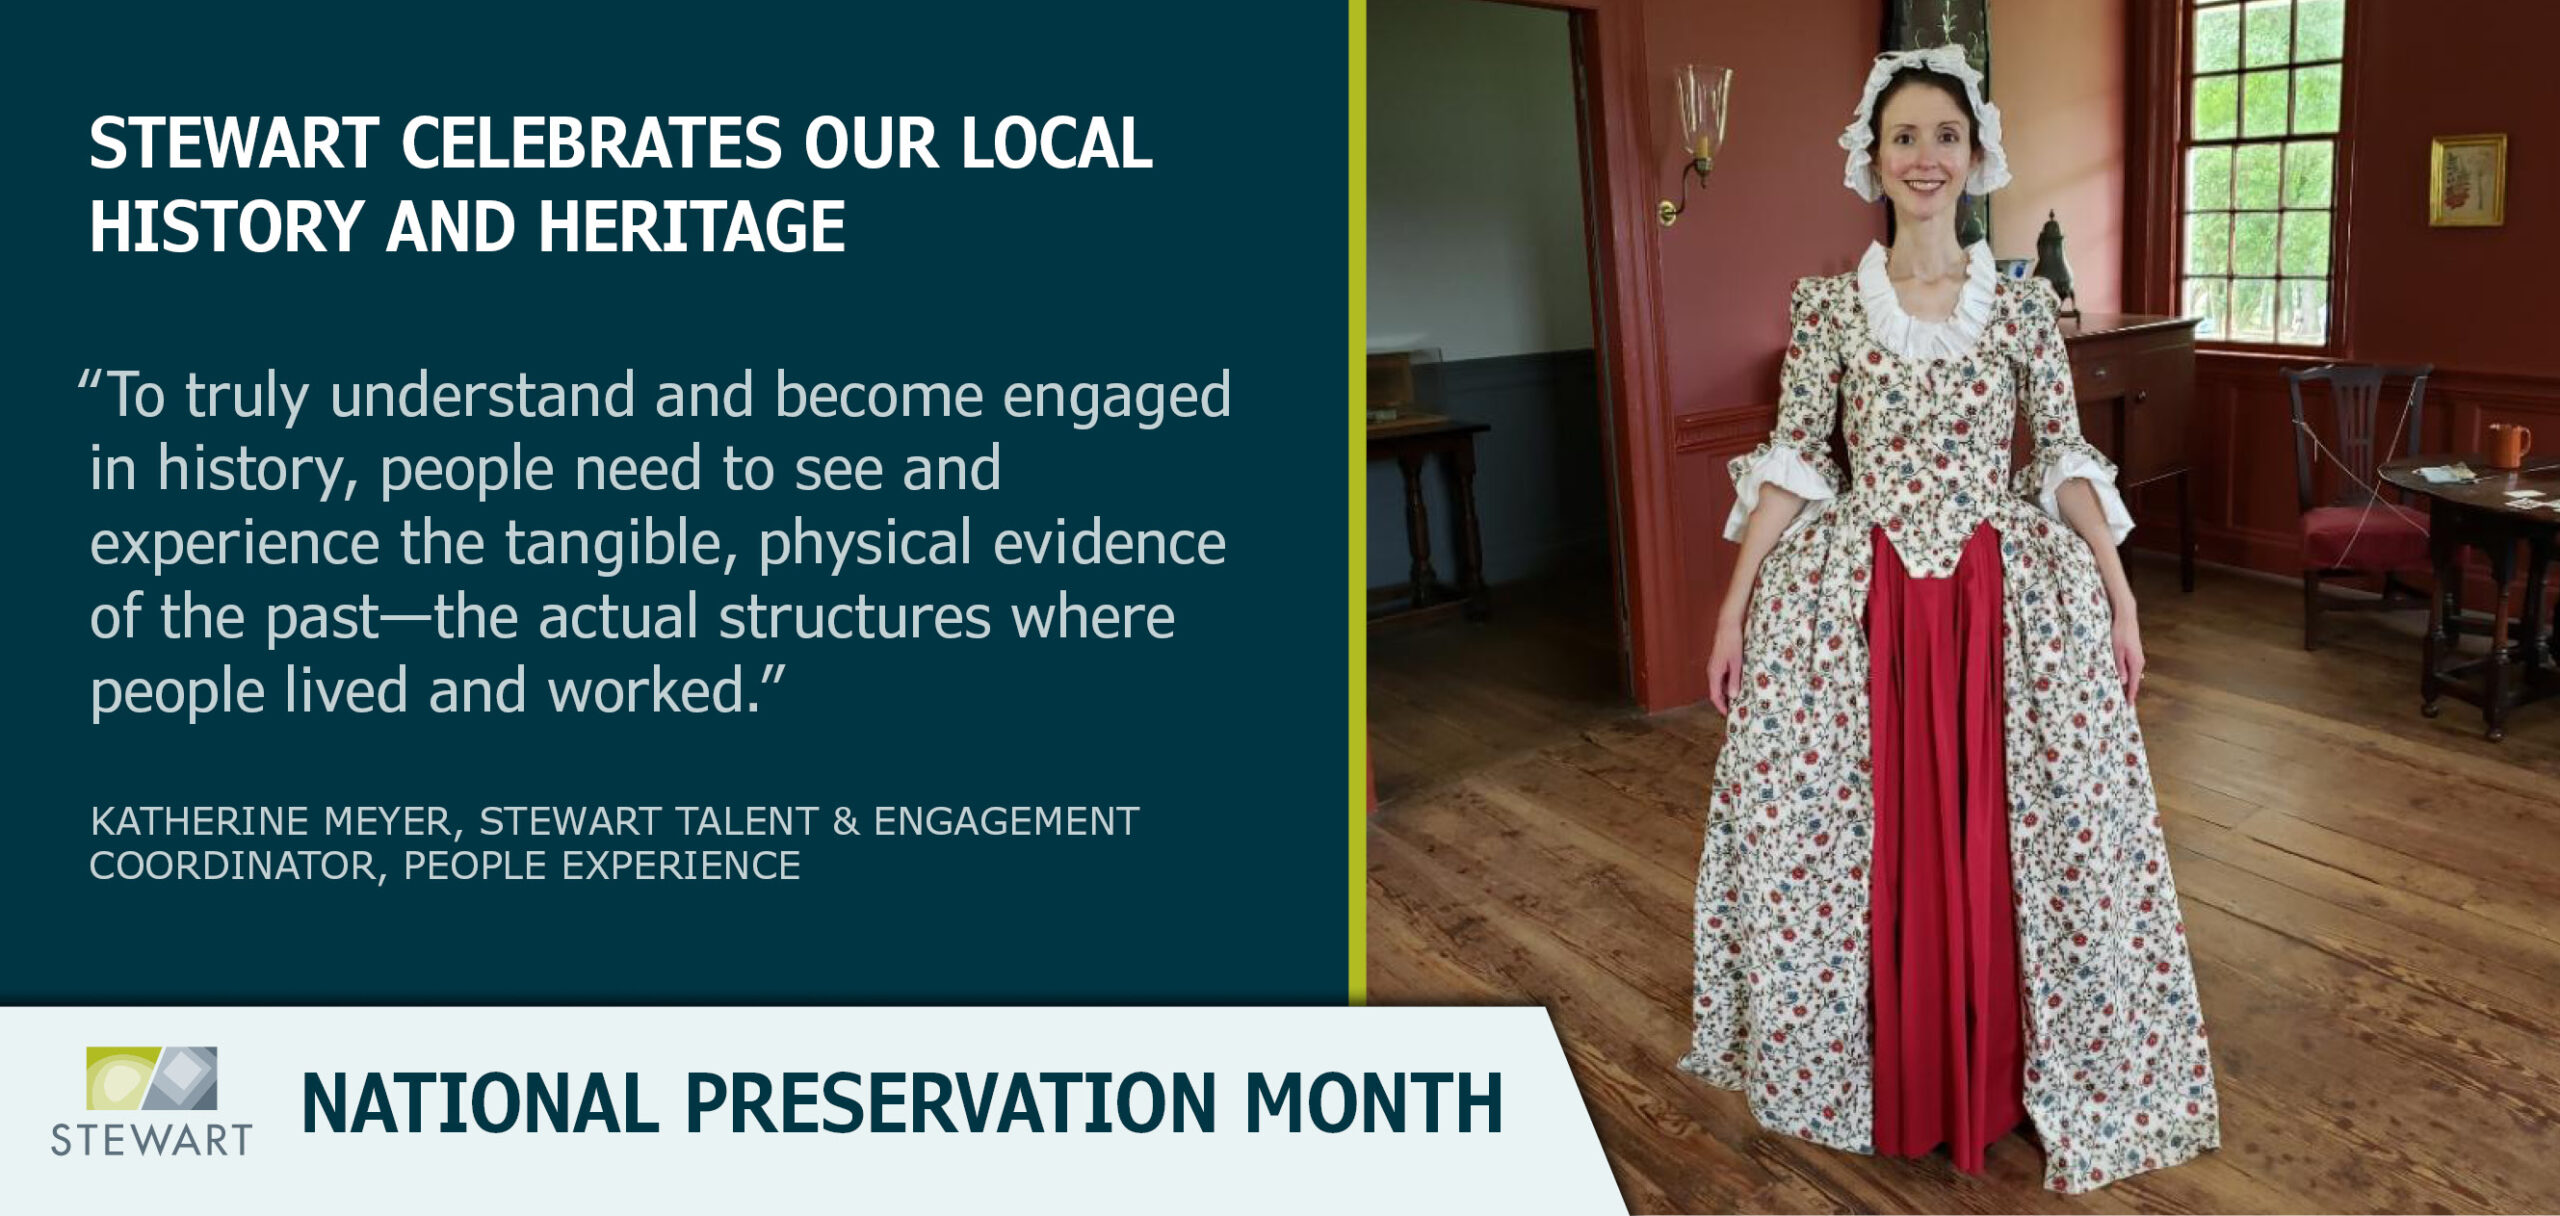 Stewart Celebrates Our Local History and Heritage